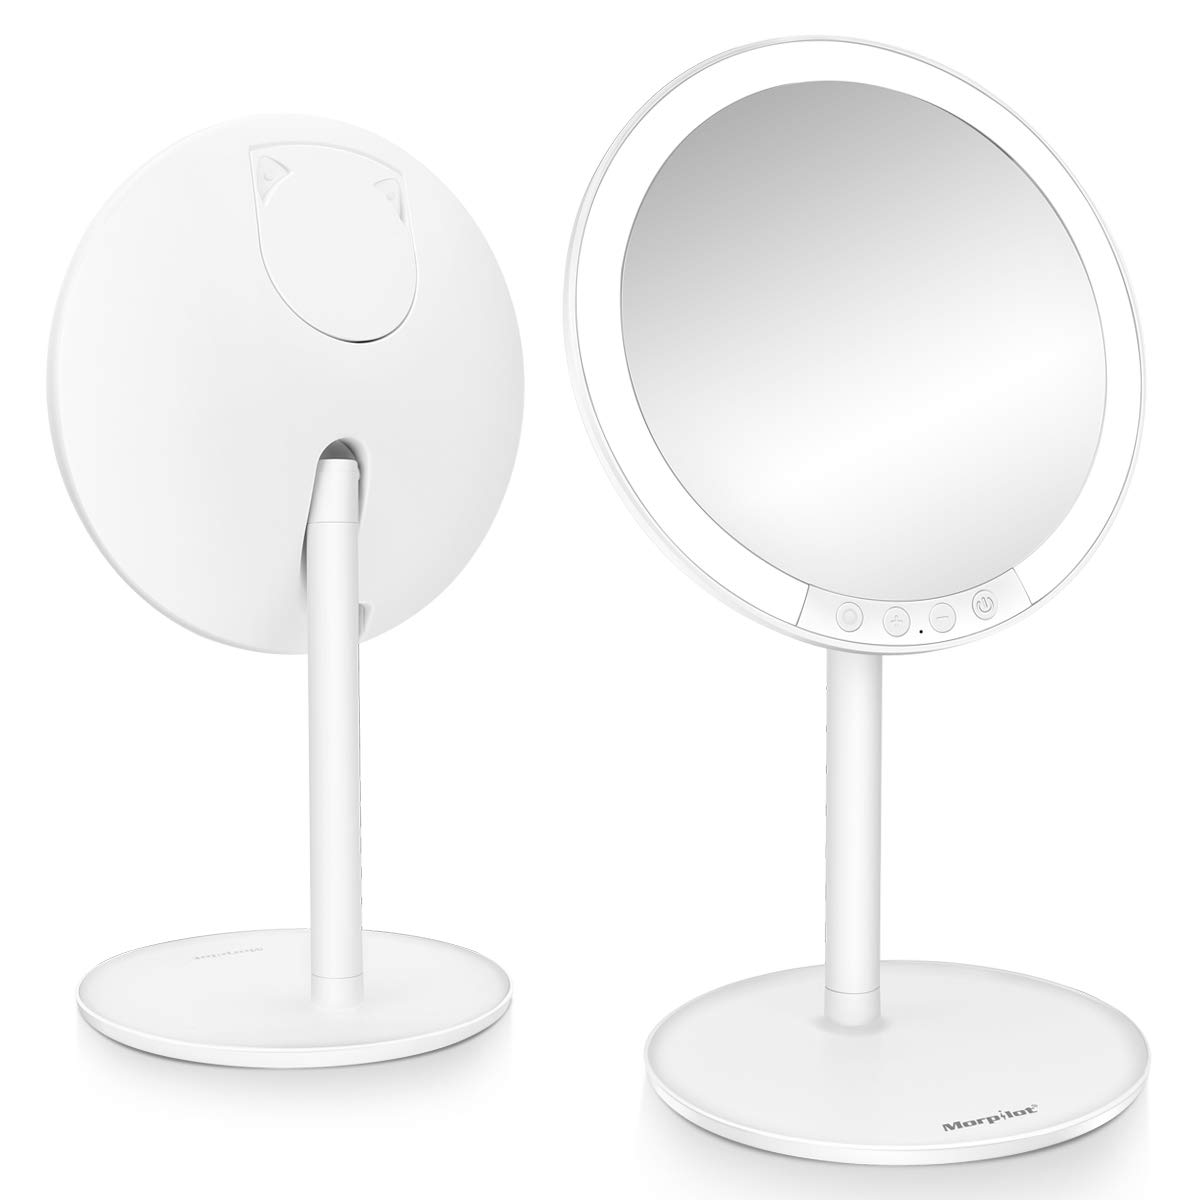 Lighted Makeup Mirror, Morpilot 7.8 1X Vanity LED Mirror with 3 Color Modes 7-Level Adjustable Brightness, 120 Degree Rotation, USB Rechargeable with Small 7X Magnifying Mirror for Cosmetic